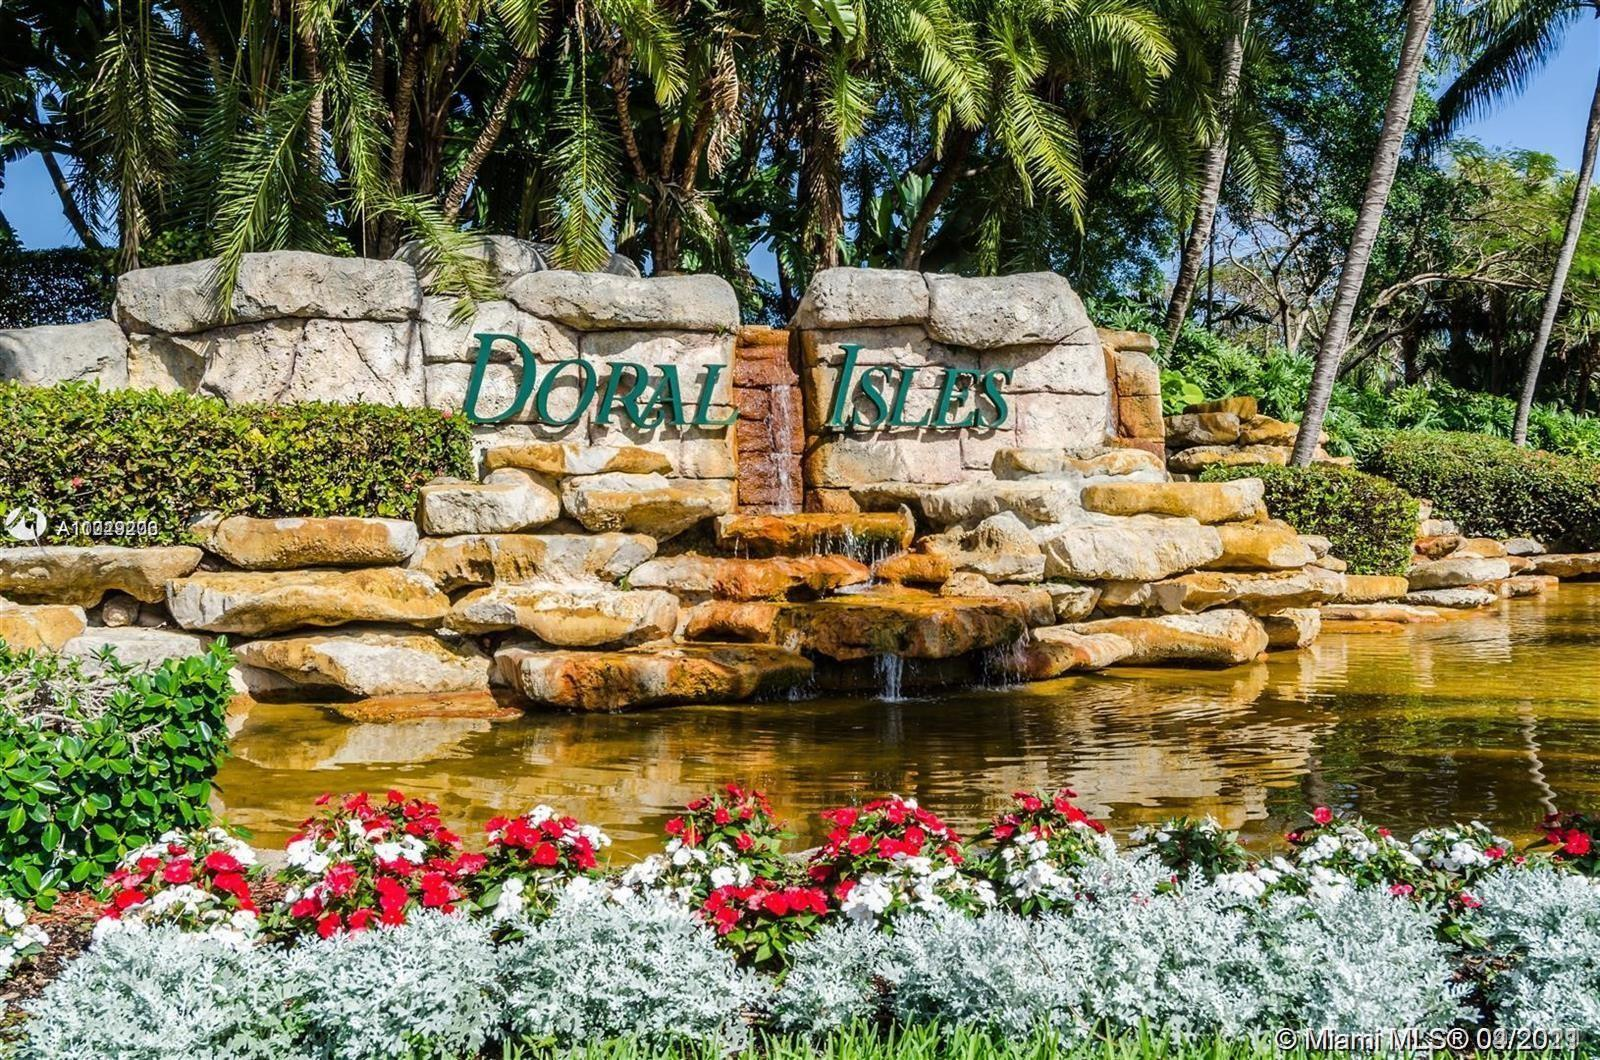 Doral Isles - 11136 NW 72nd Ter, Doral, FL 33178